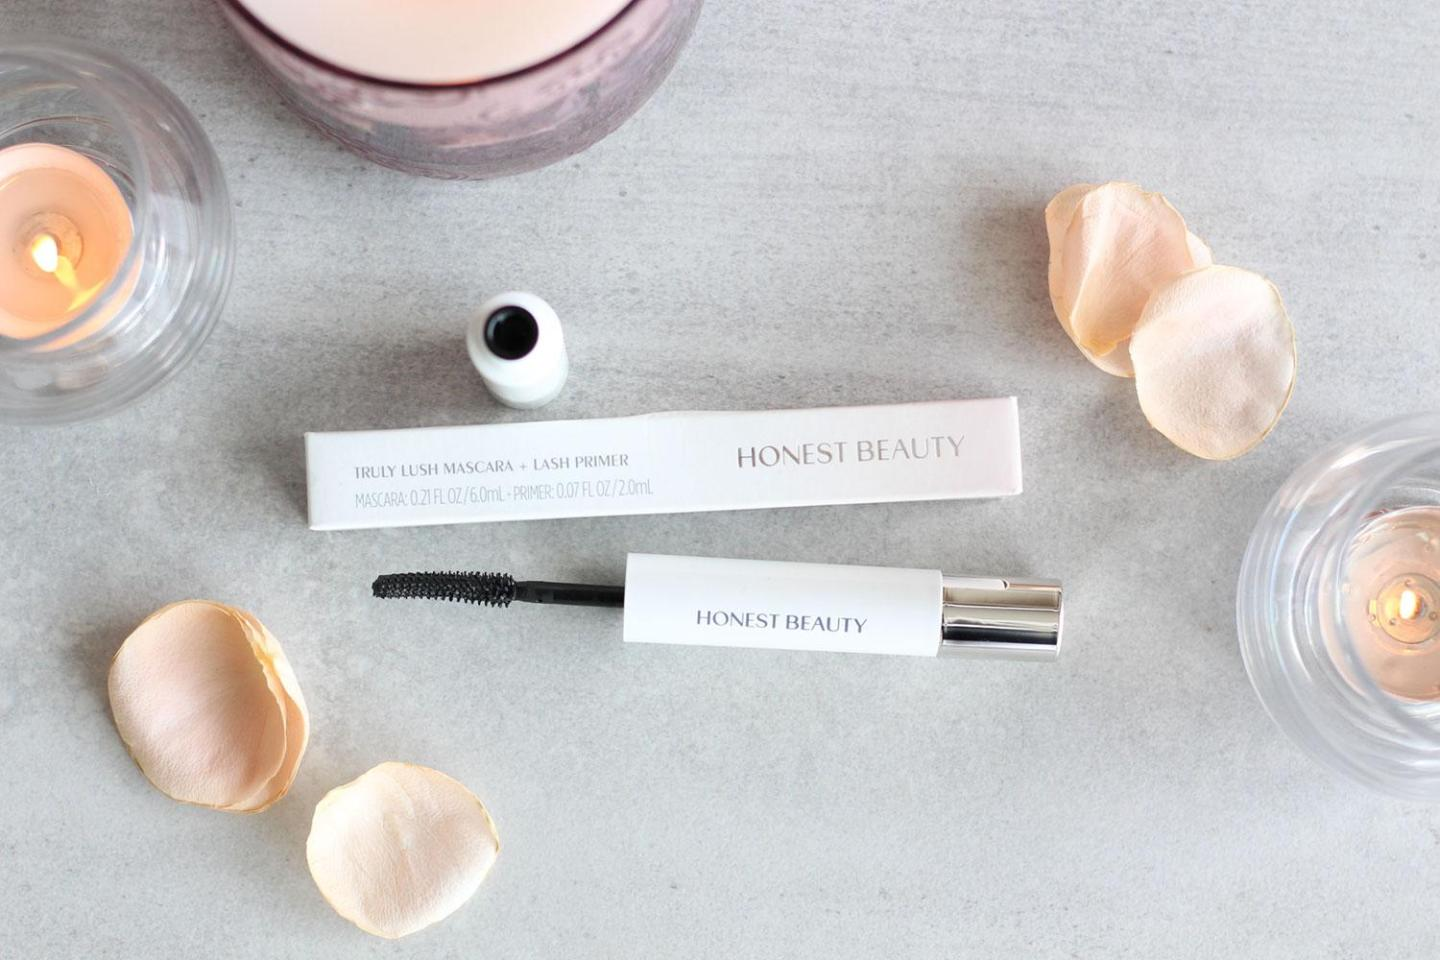 Honest Beauty Truly Lush Mascara + Lash Primer Review